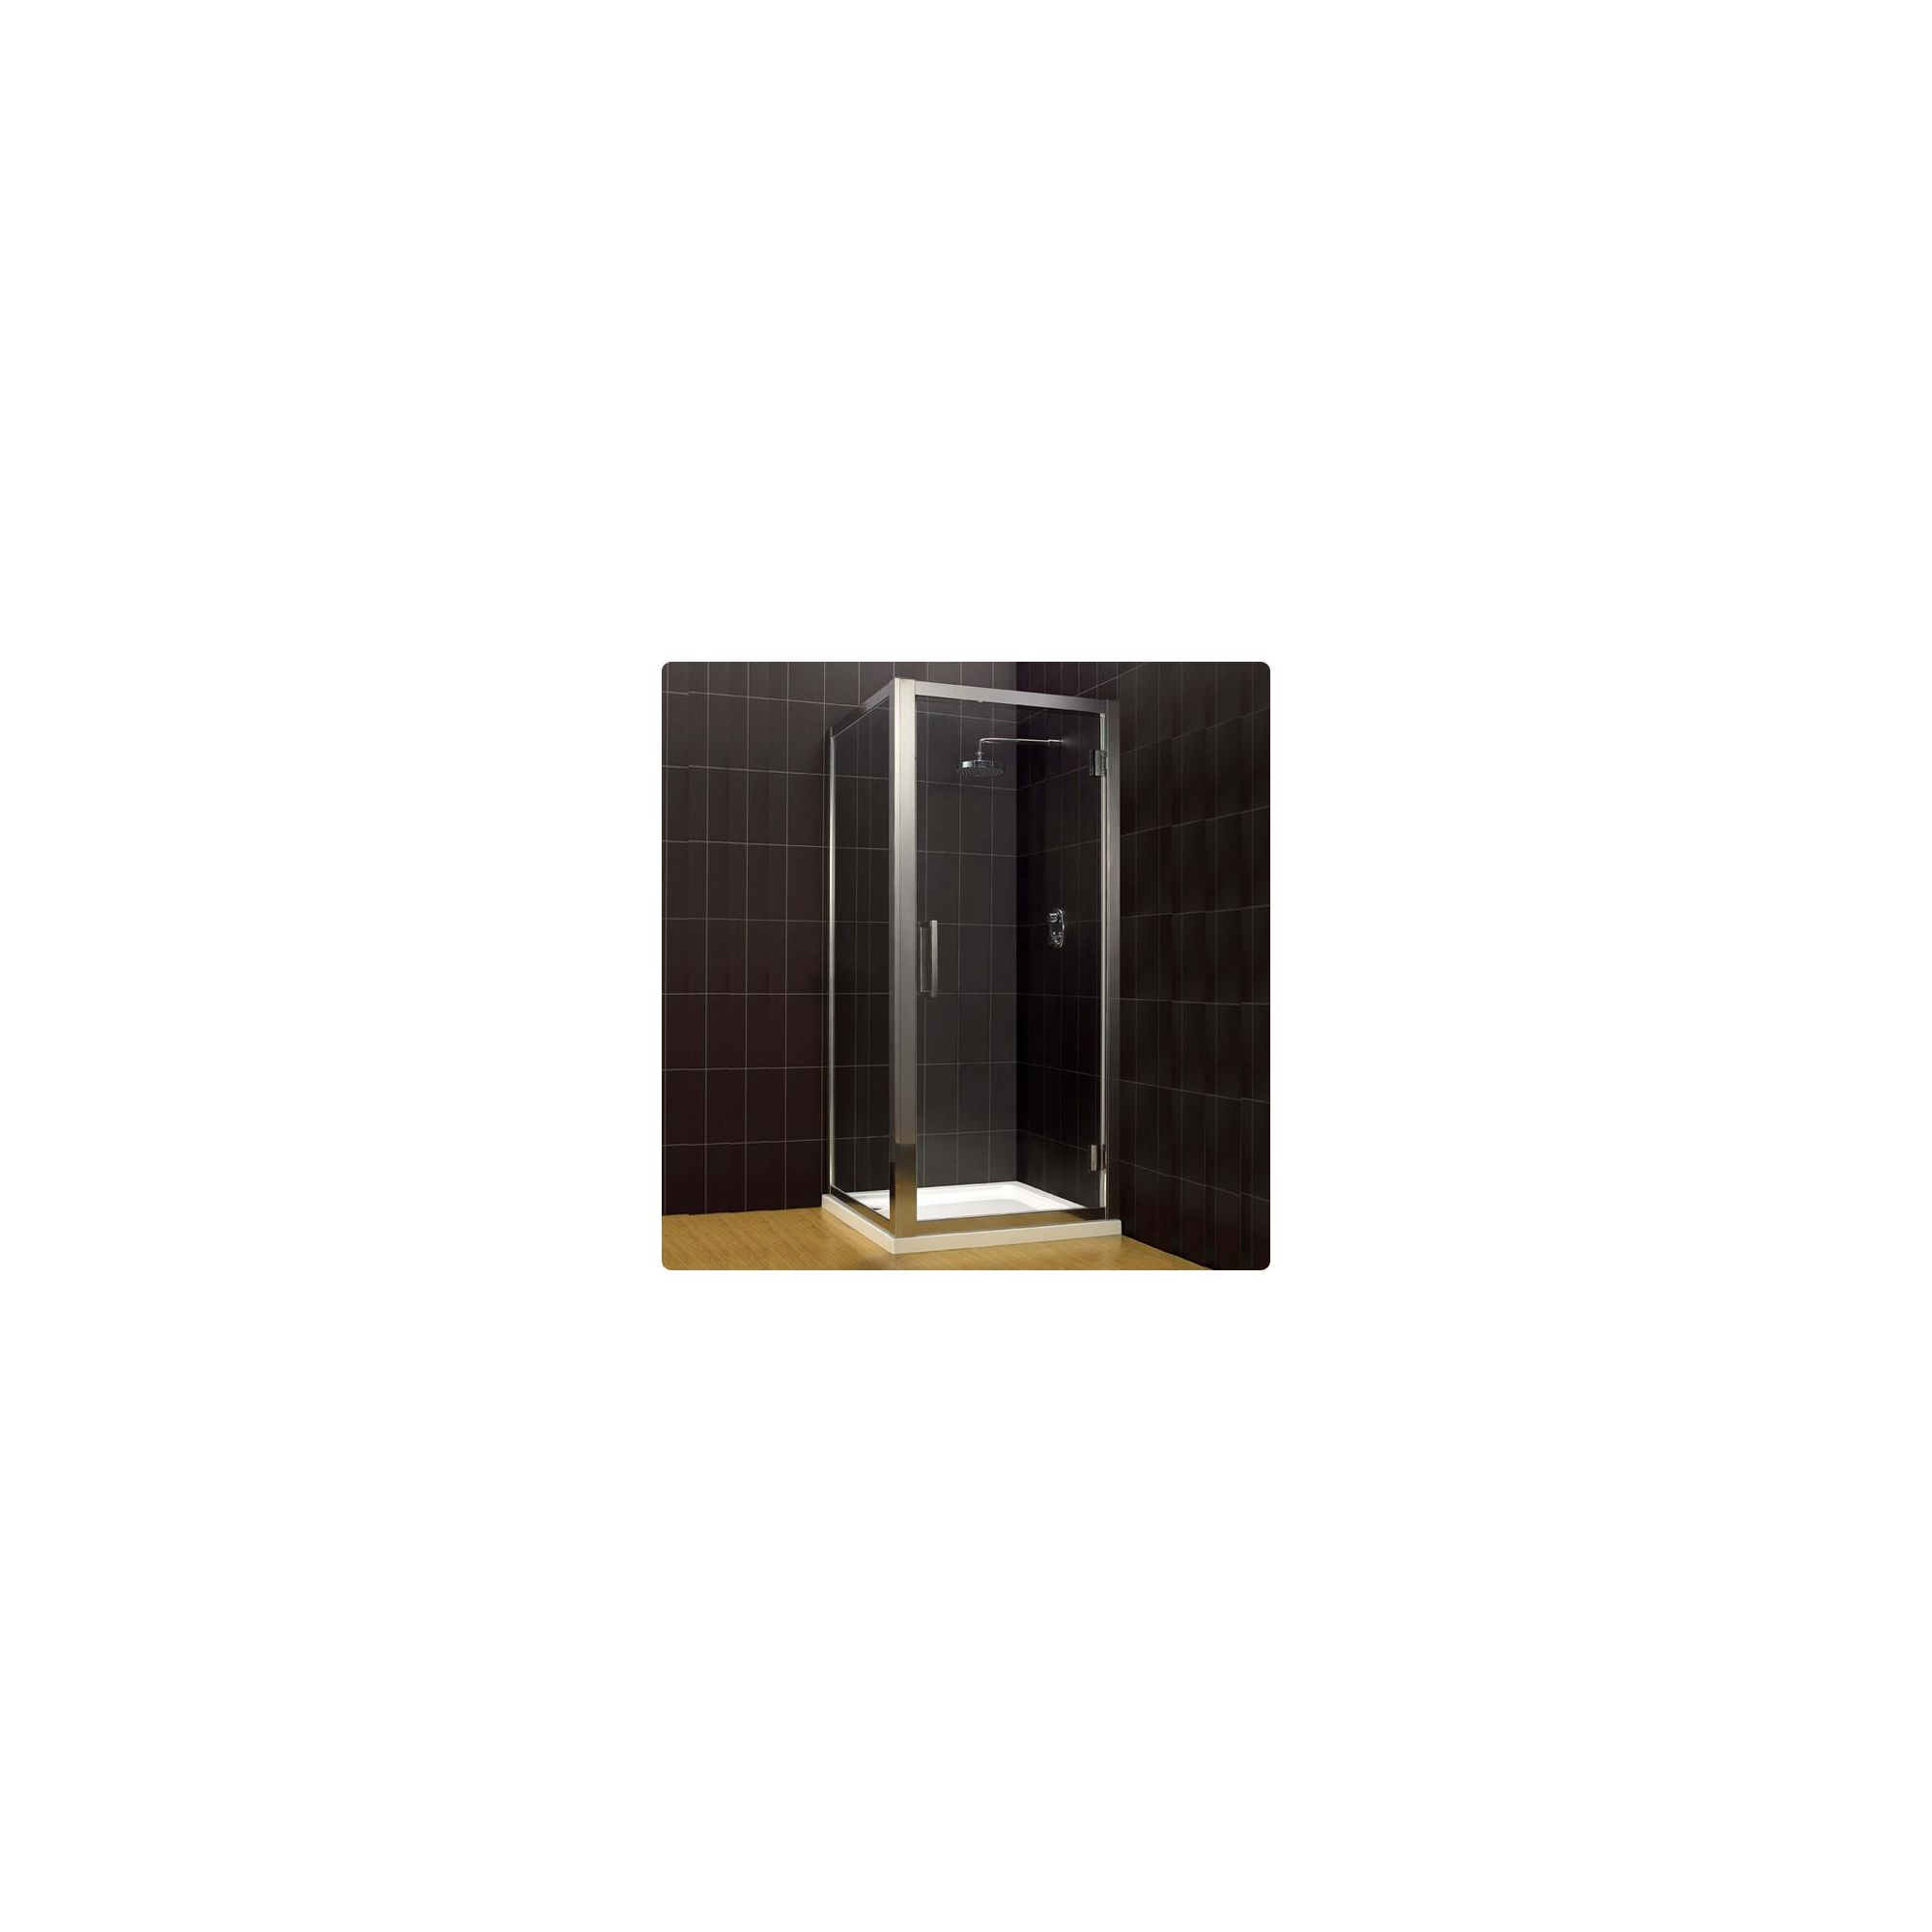 Duchy Supreme Silver Hinged Door Shower Enclosure, 800mm x 760mm, Standard Tray, 8mm Glass at Tesco Direct